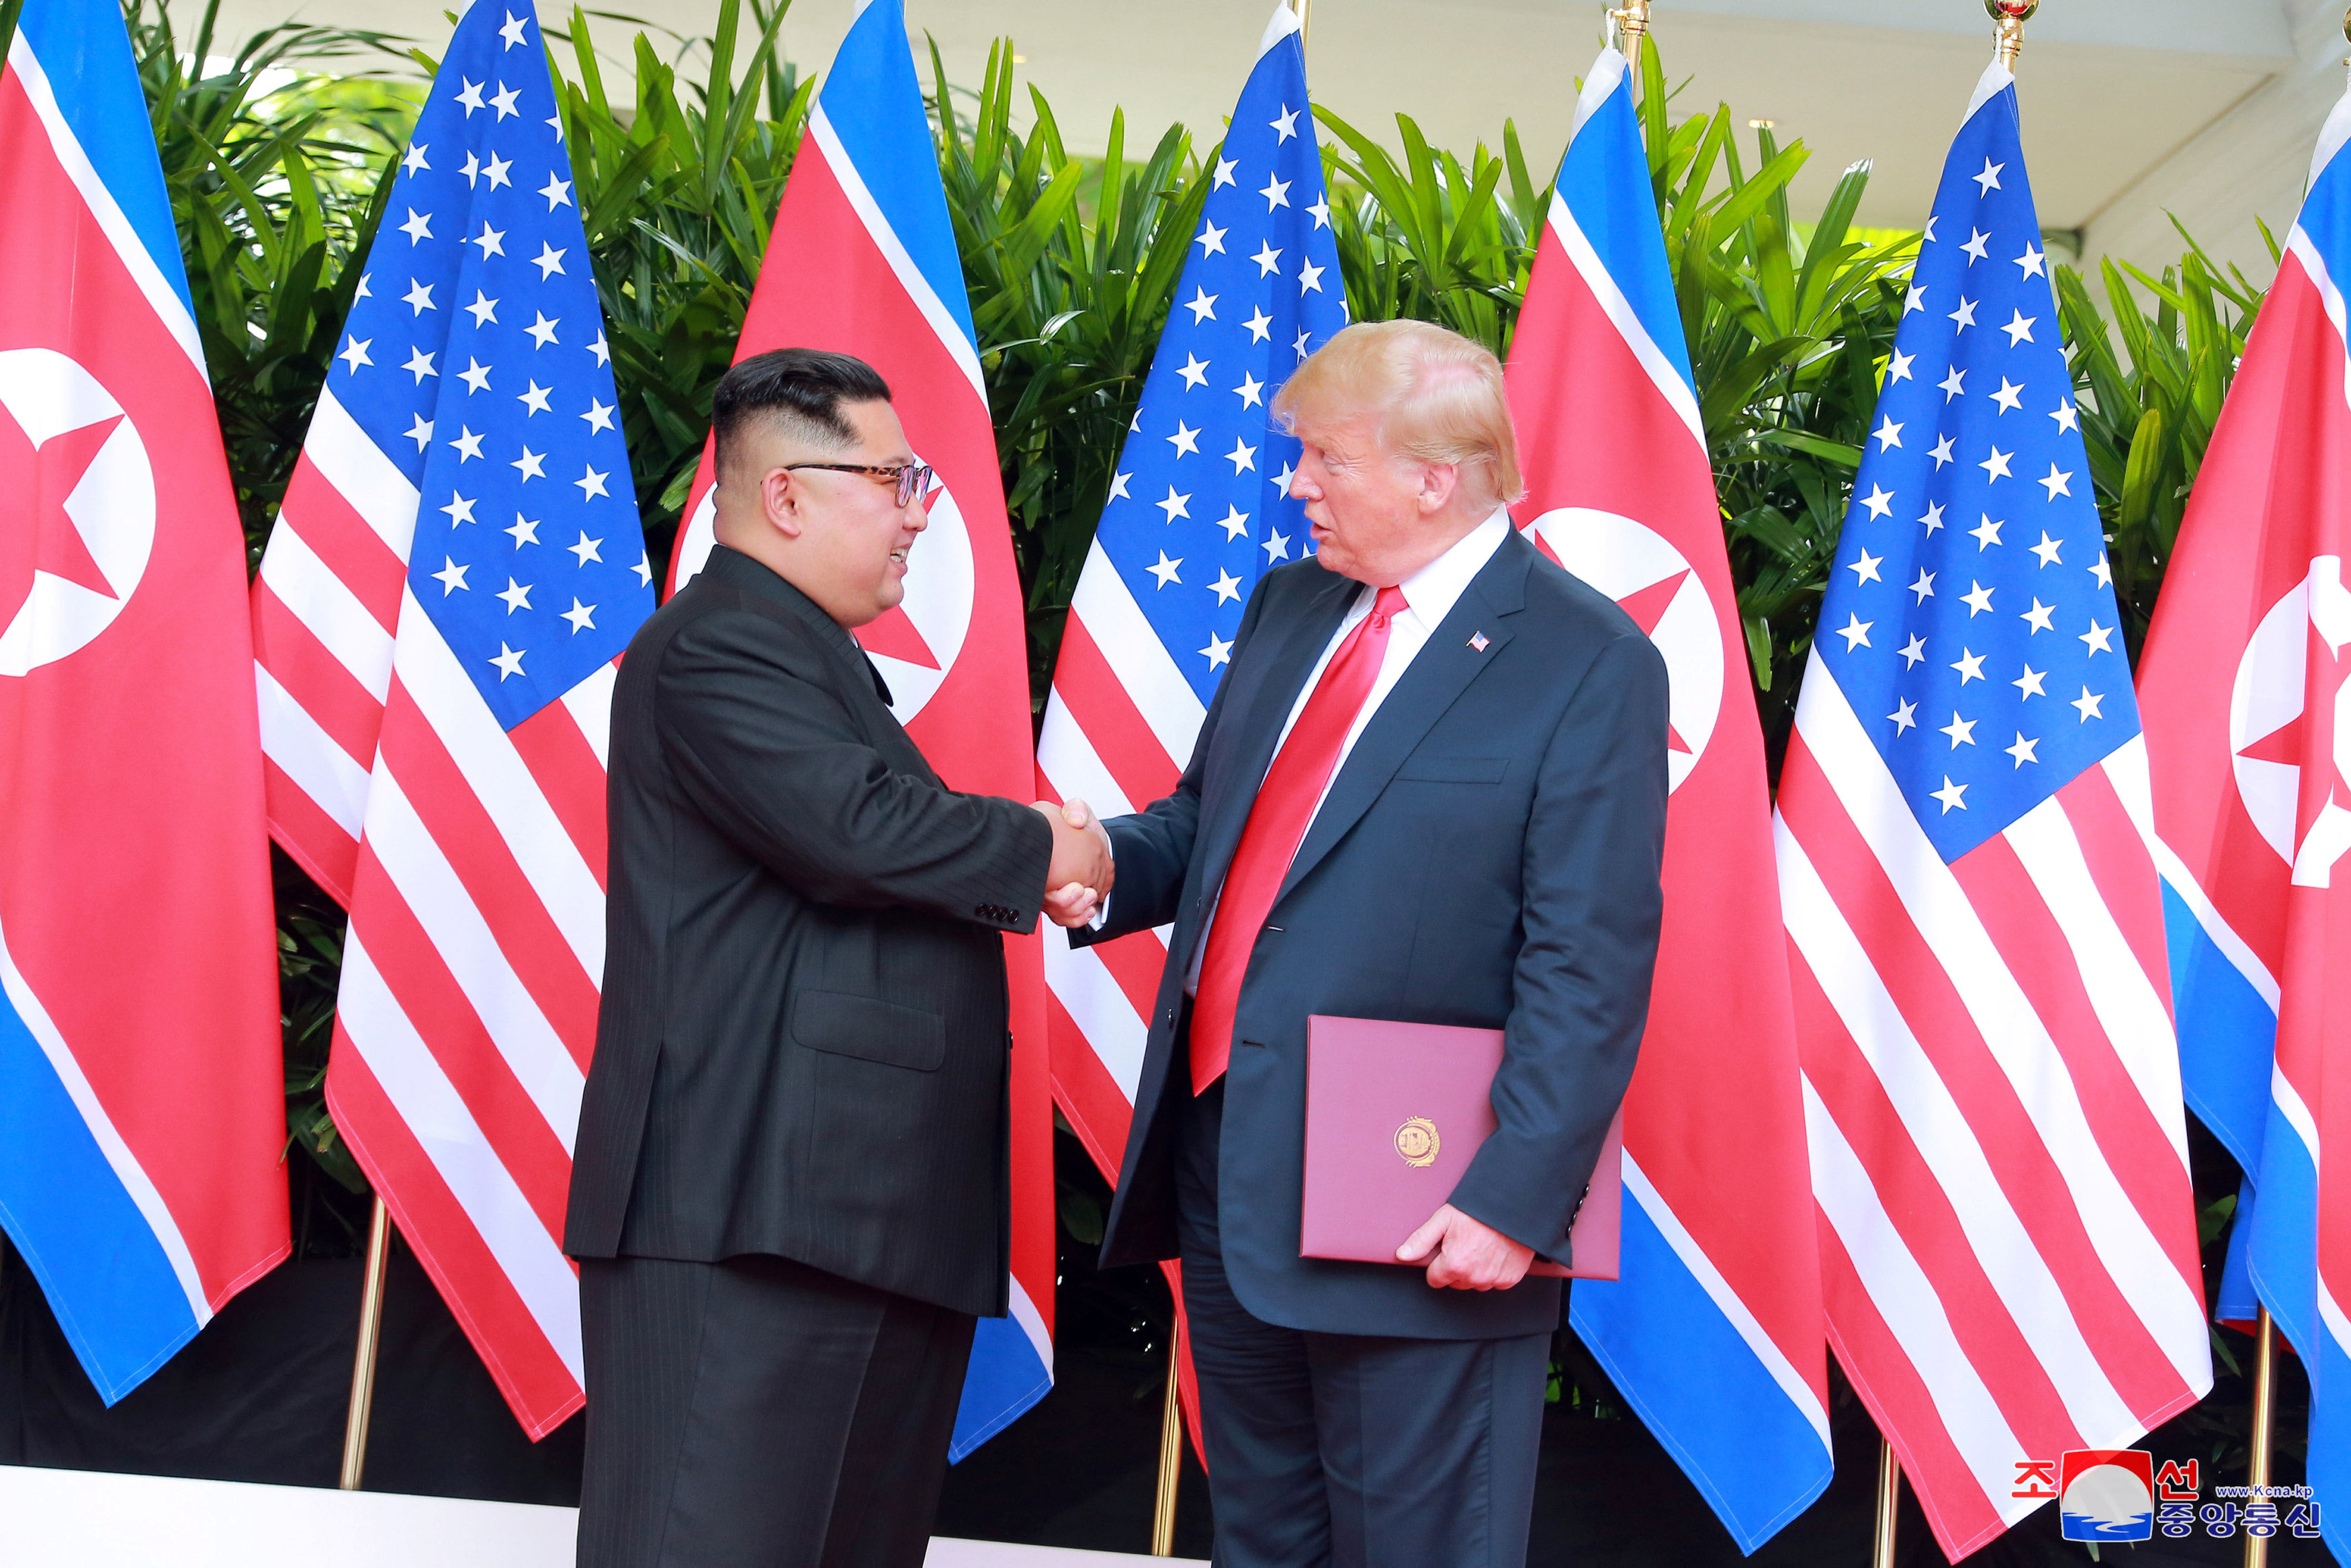 'Real Credit for Trump-Kim Meeting Goes to South Korean President Moon'